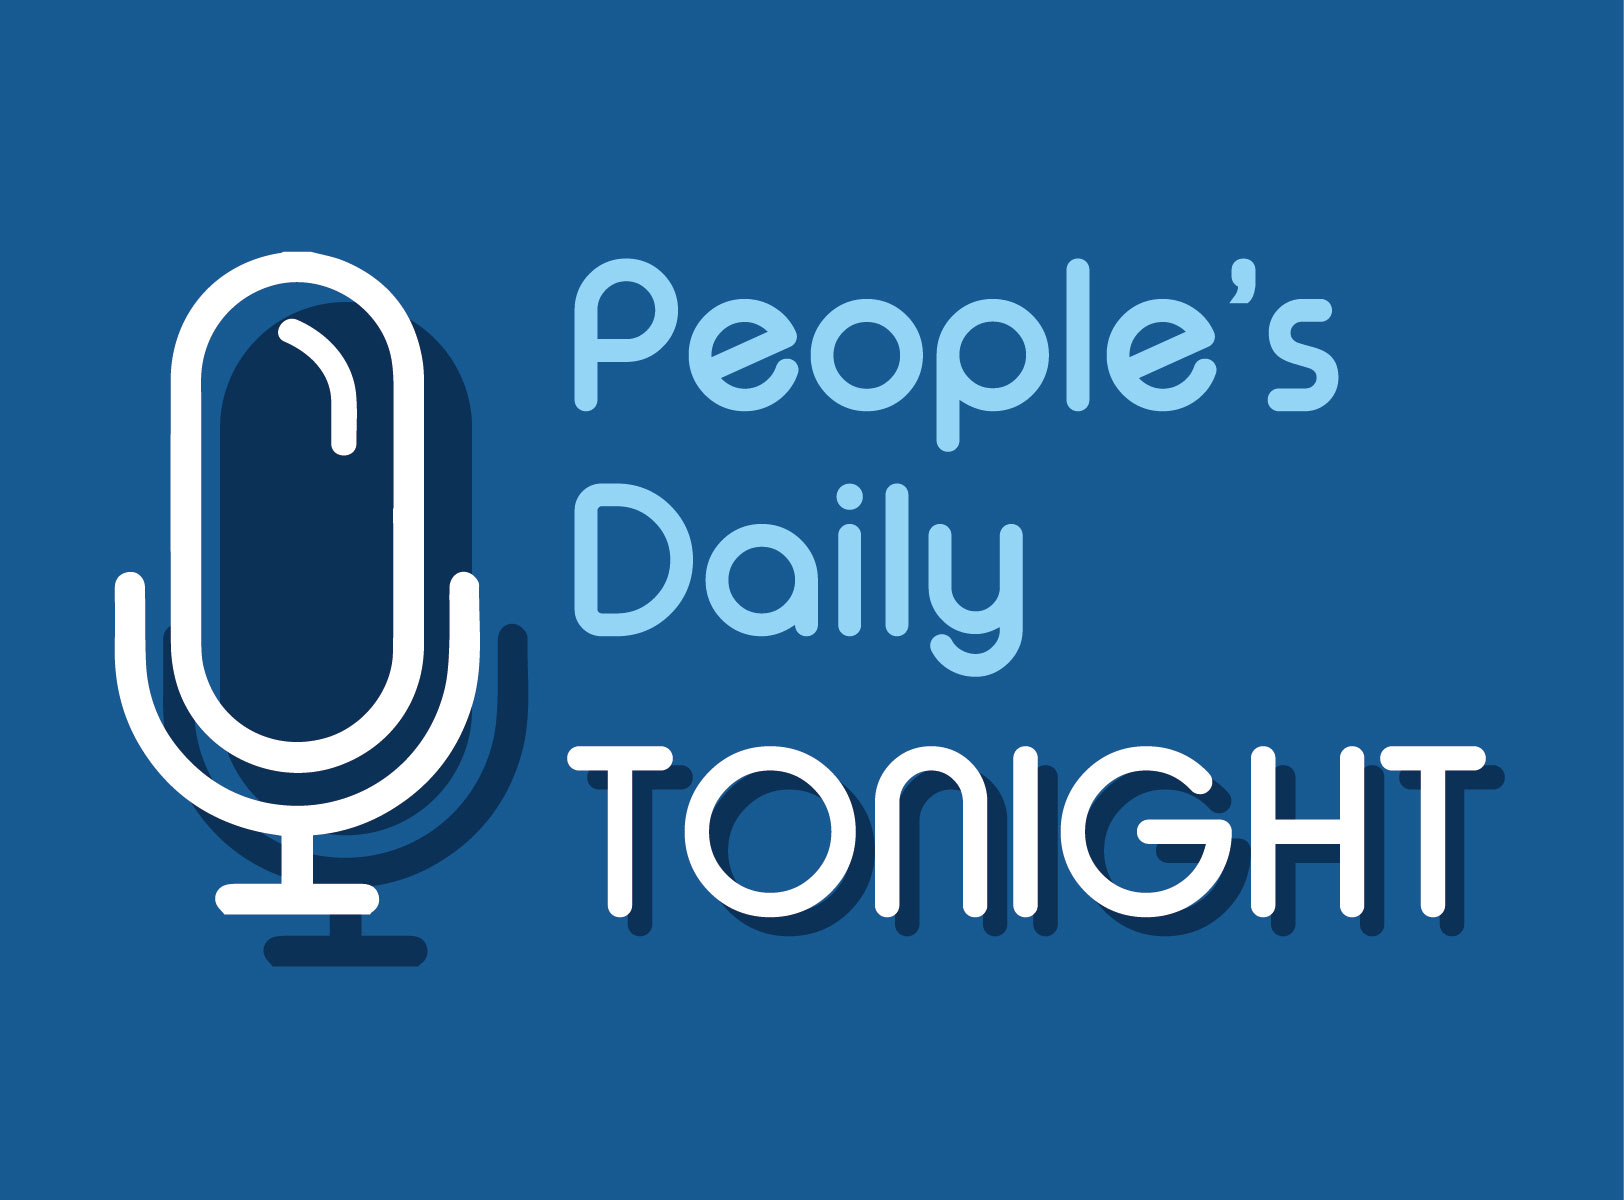 People's Daily Tonight: Podcast News (12/12/2018 Wed.)